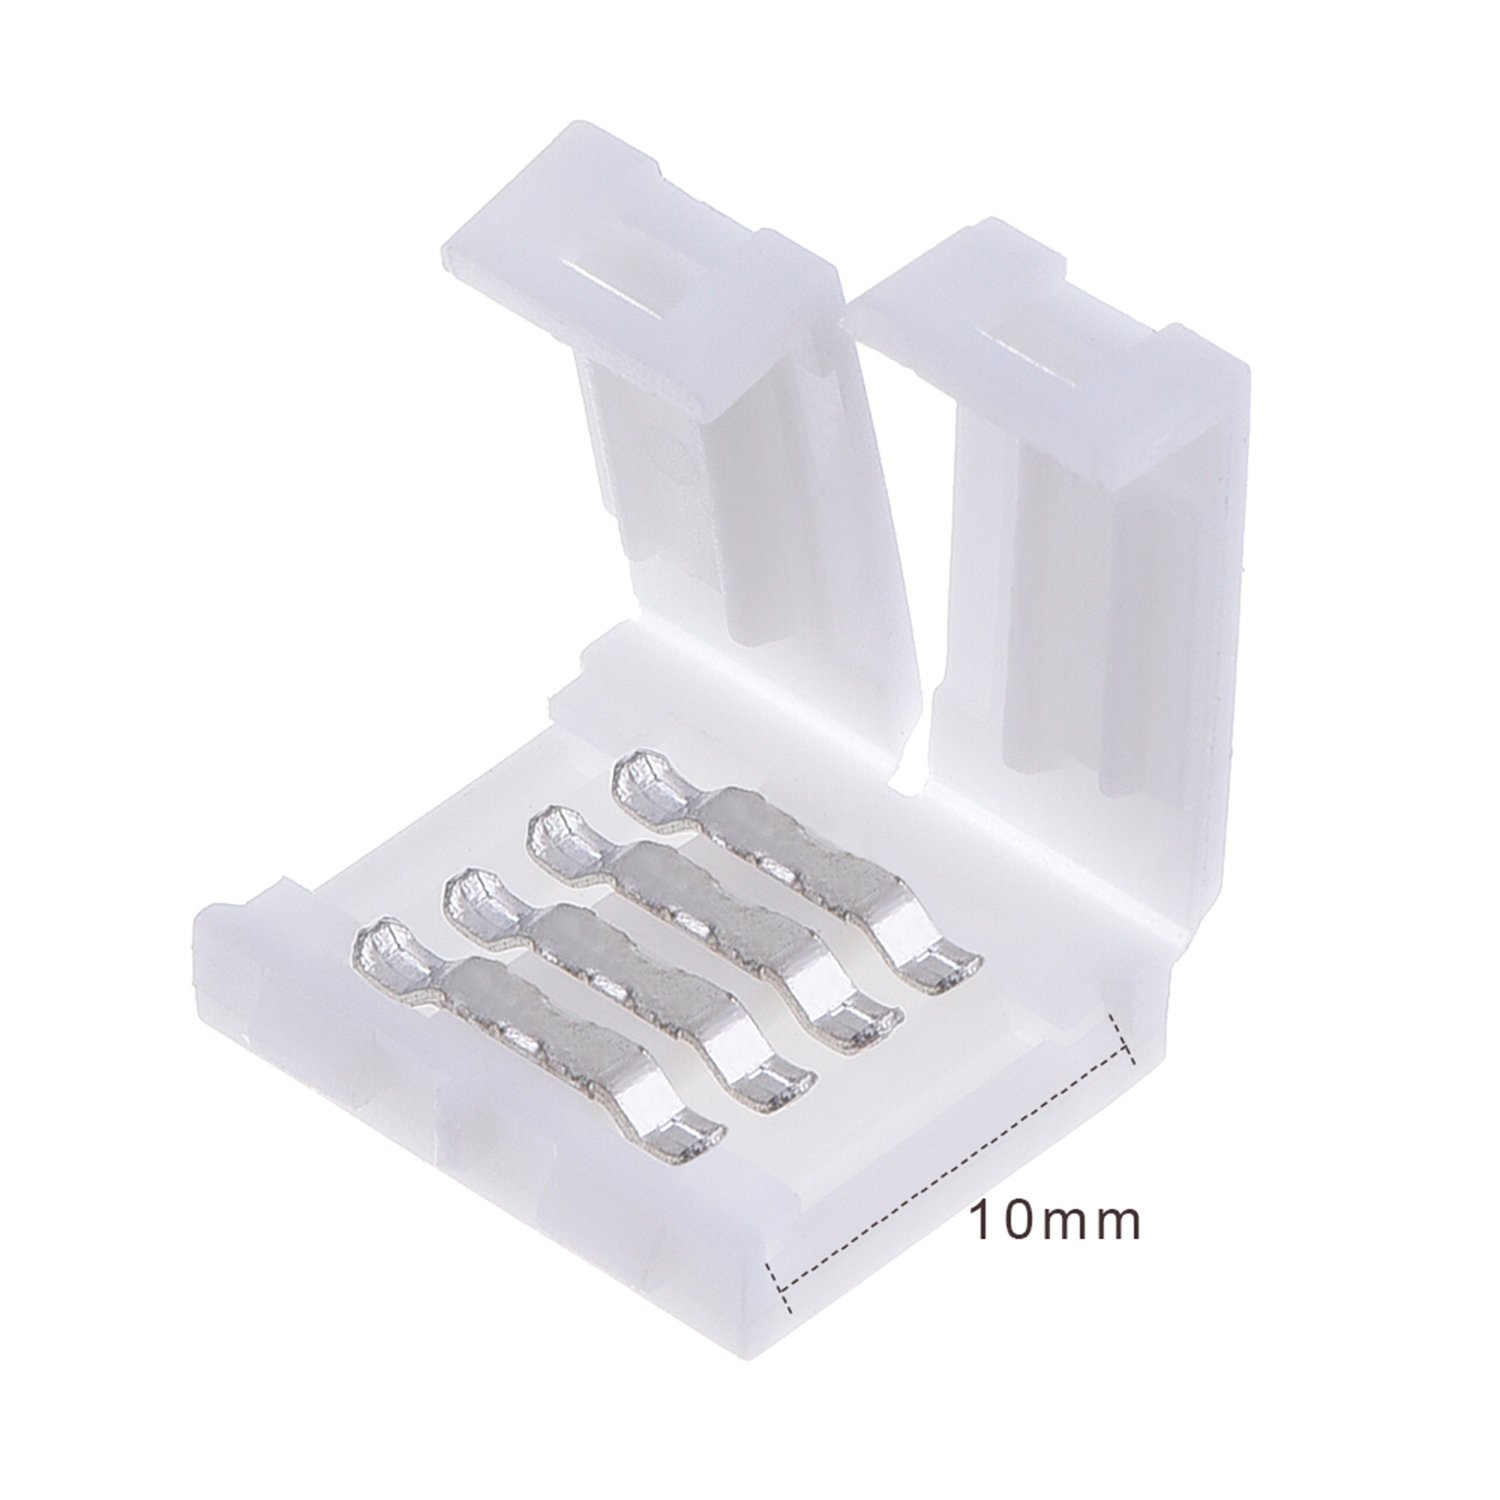 20 Pieces LED Strip Connector for 5050 RGB LED Strip Lights